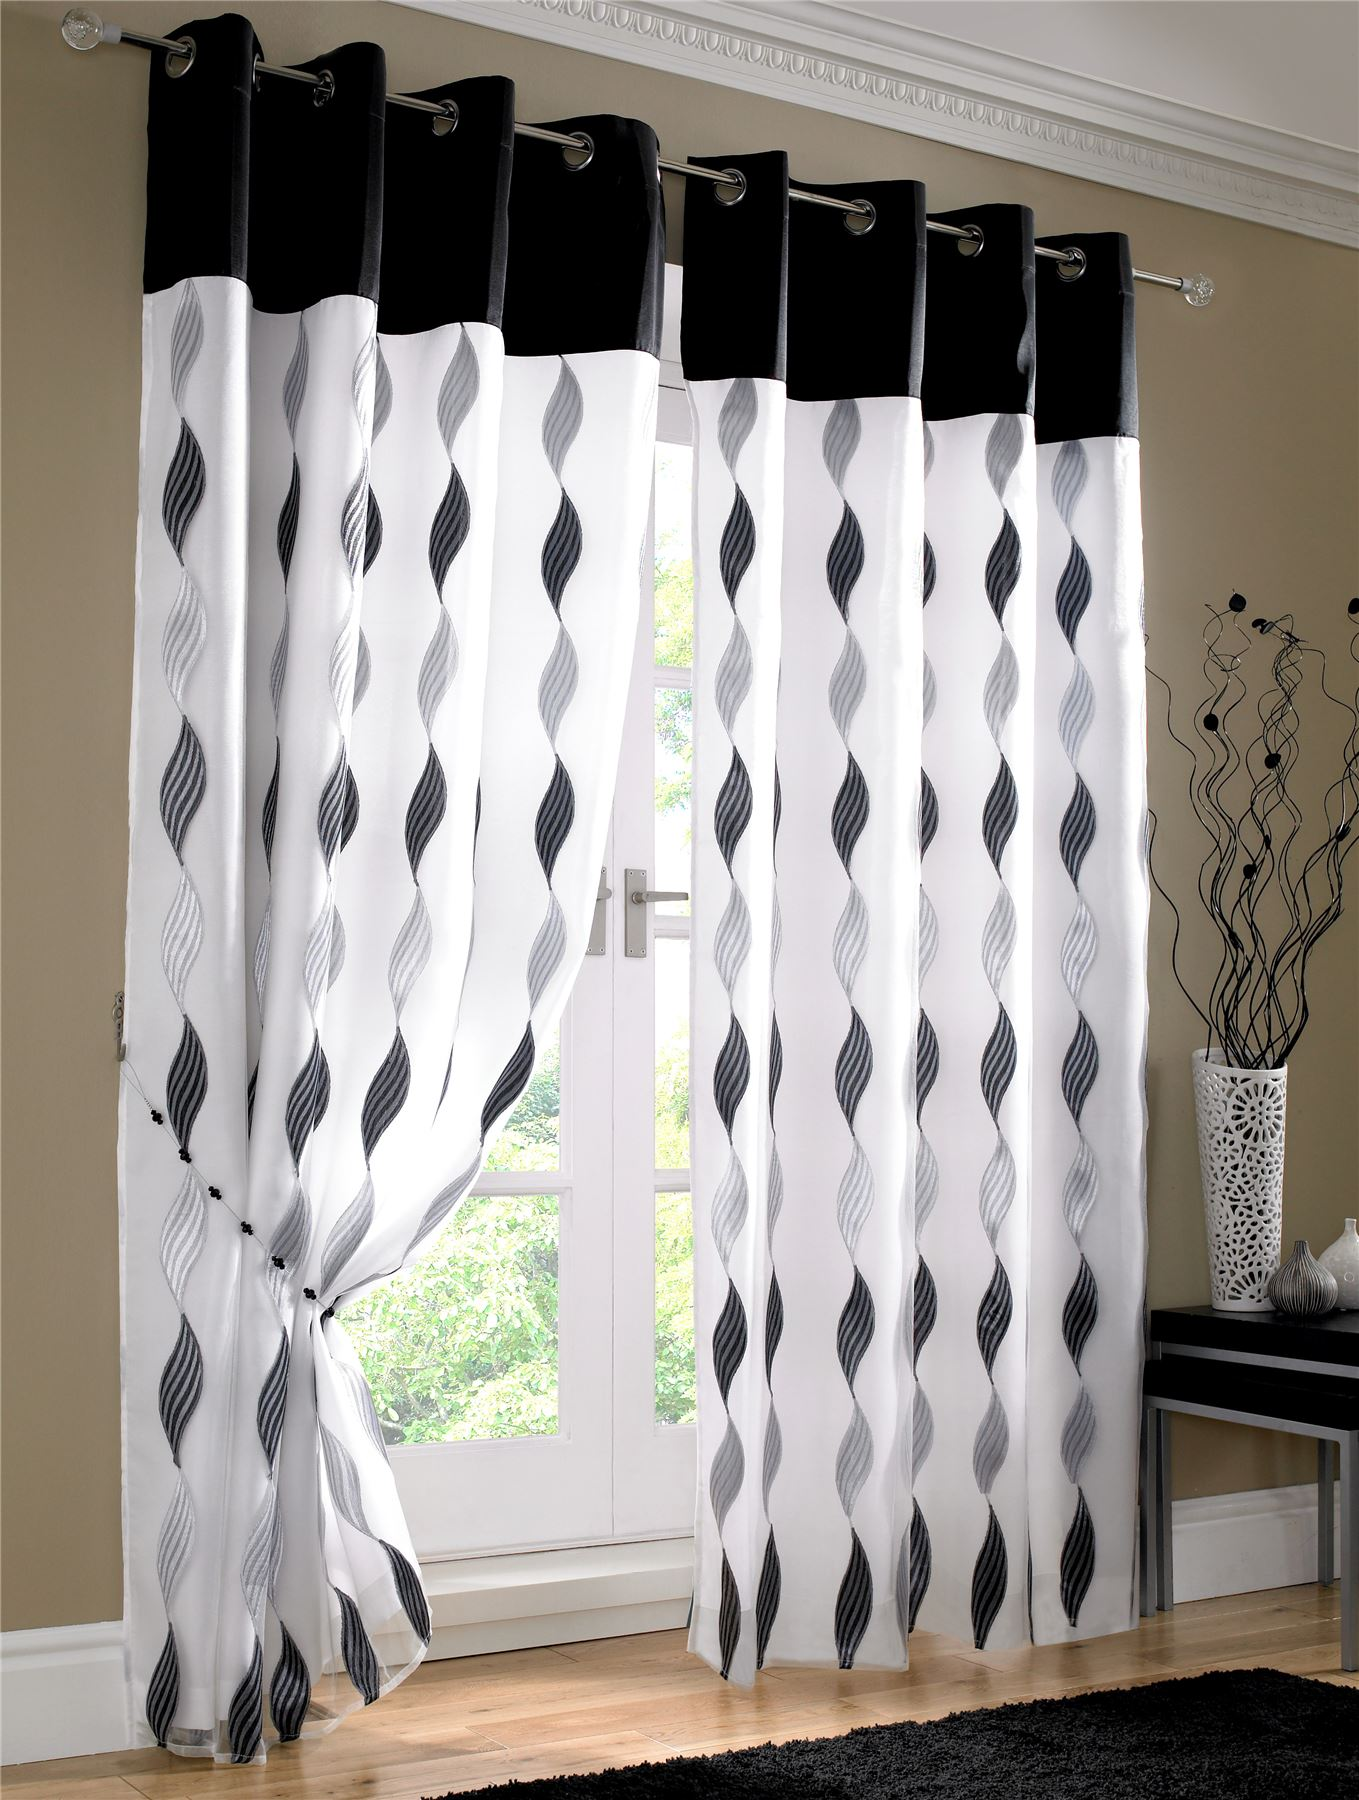 Black White Floral Rose Fully Lined Ring Top Voile Curtain